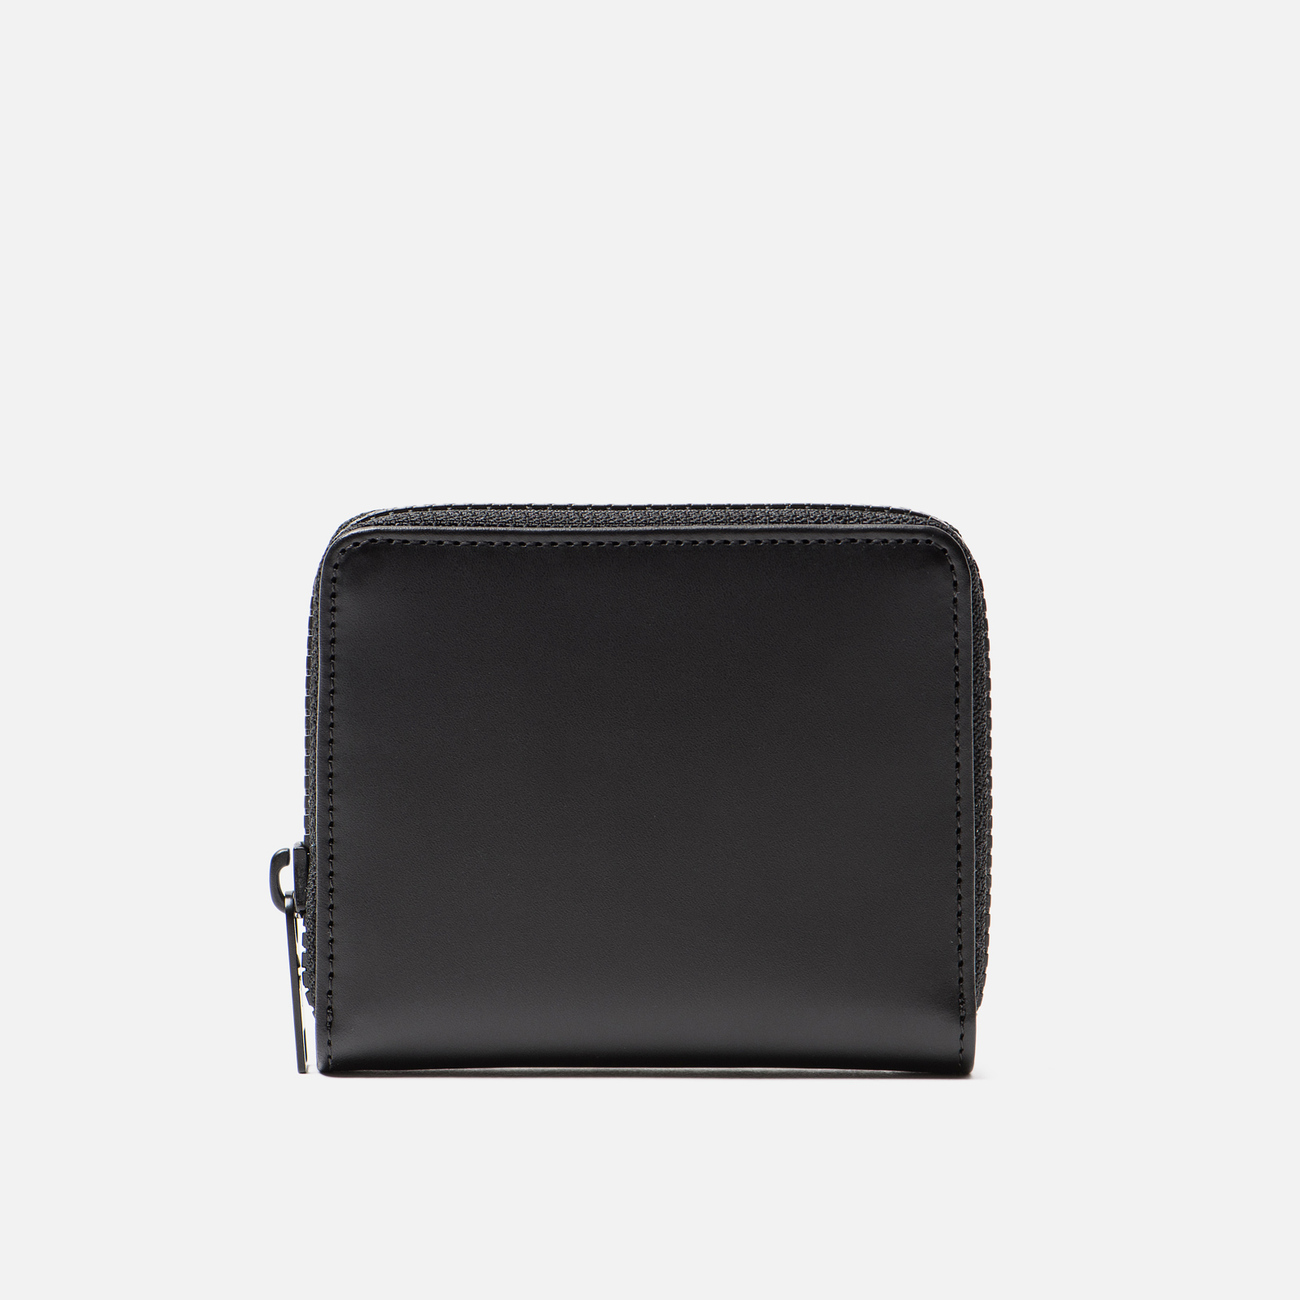 Кошелек Maison Margiela 11 Leather Small Zip Black/Black